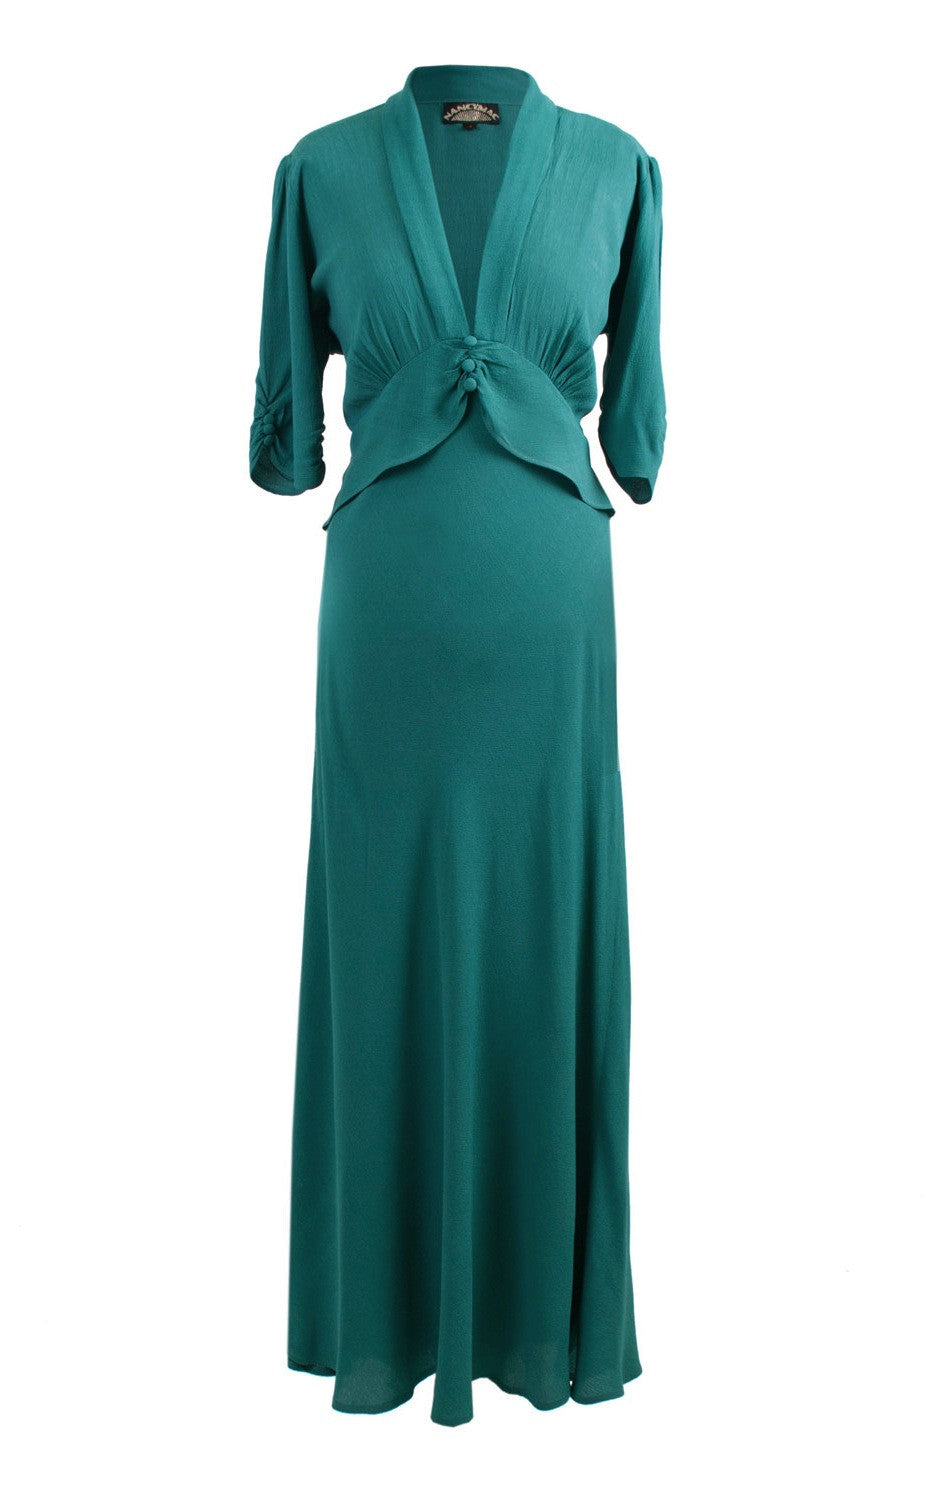 Sable maxi dress in teal - front mannequin shot